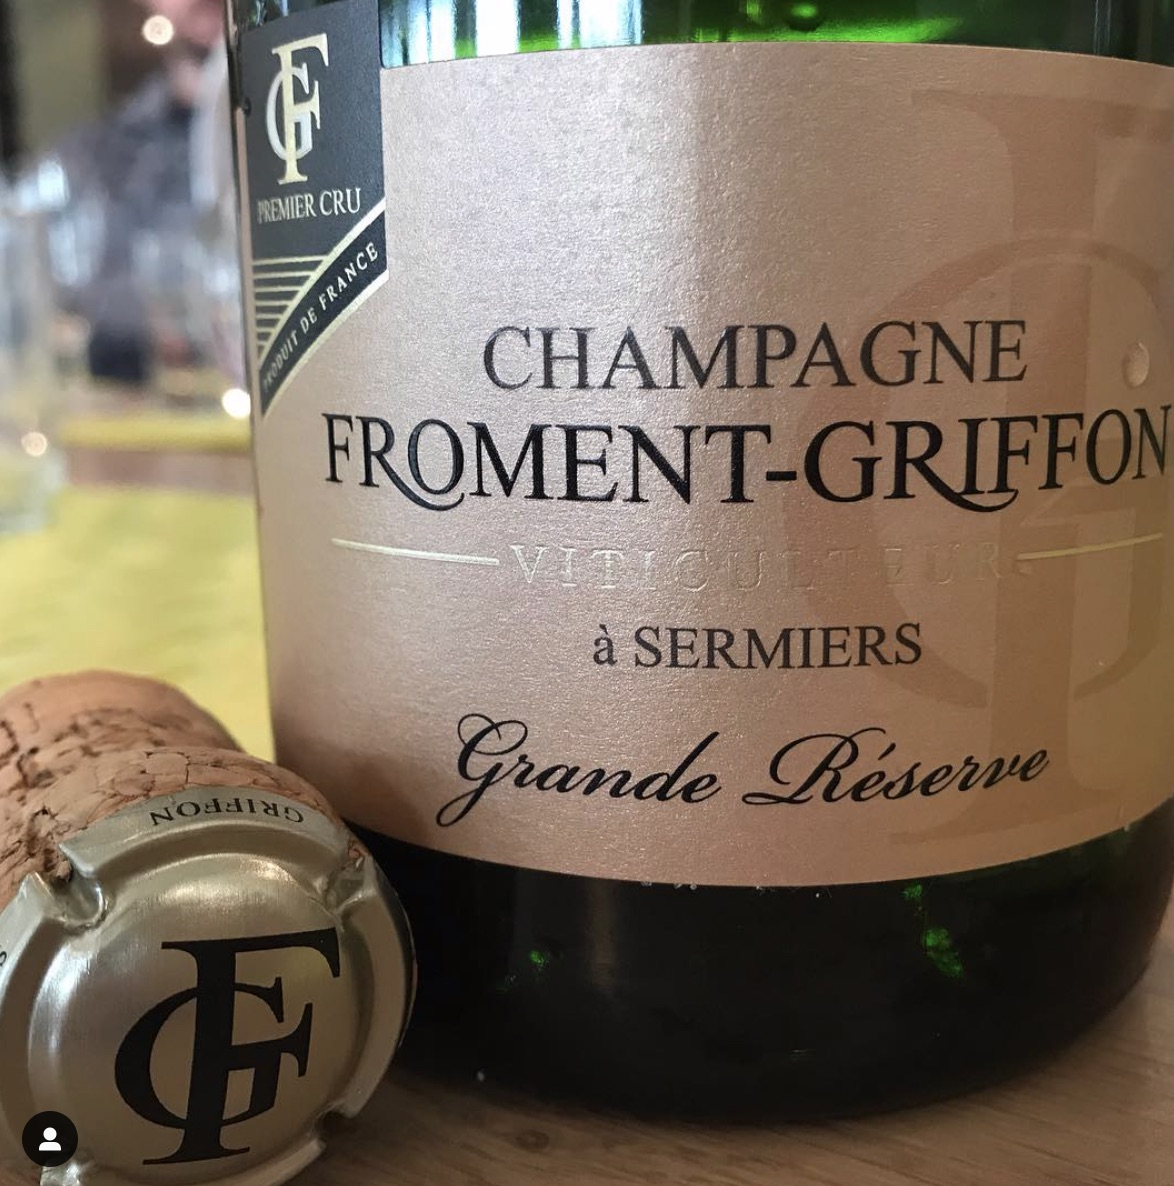 Champagne Froment-Griffon - Our House is situated in Sermiers, a village classified as Premier Cru since 2003. This distinction is especially rare since the Champagne Crus were classified in 1927 and this highlights the qualities of this exceptional terroir.